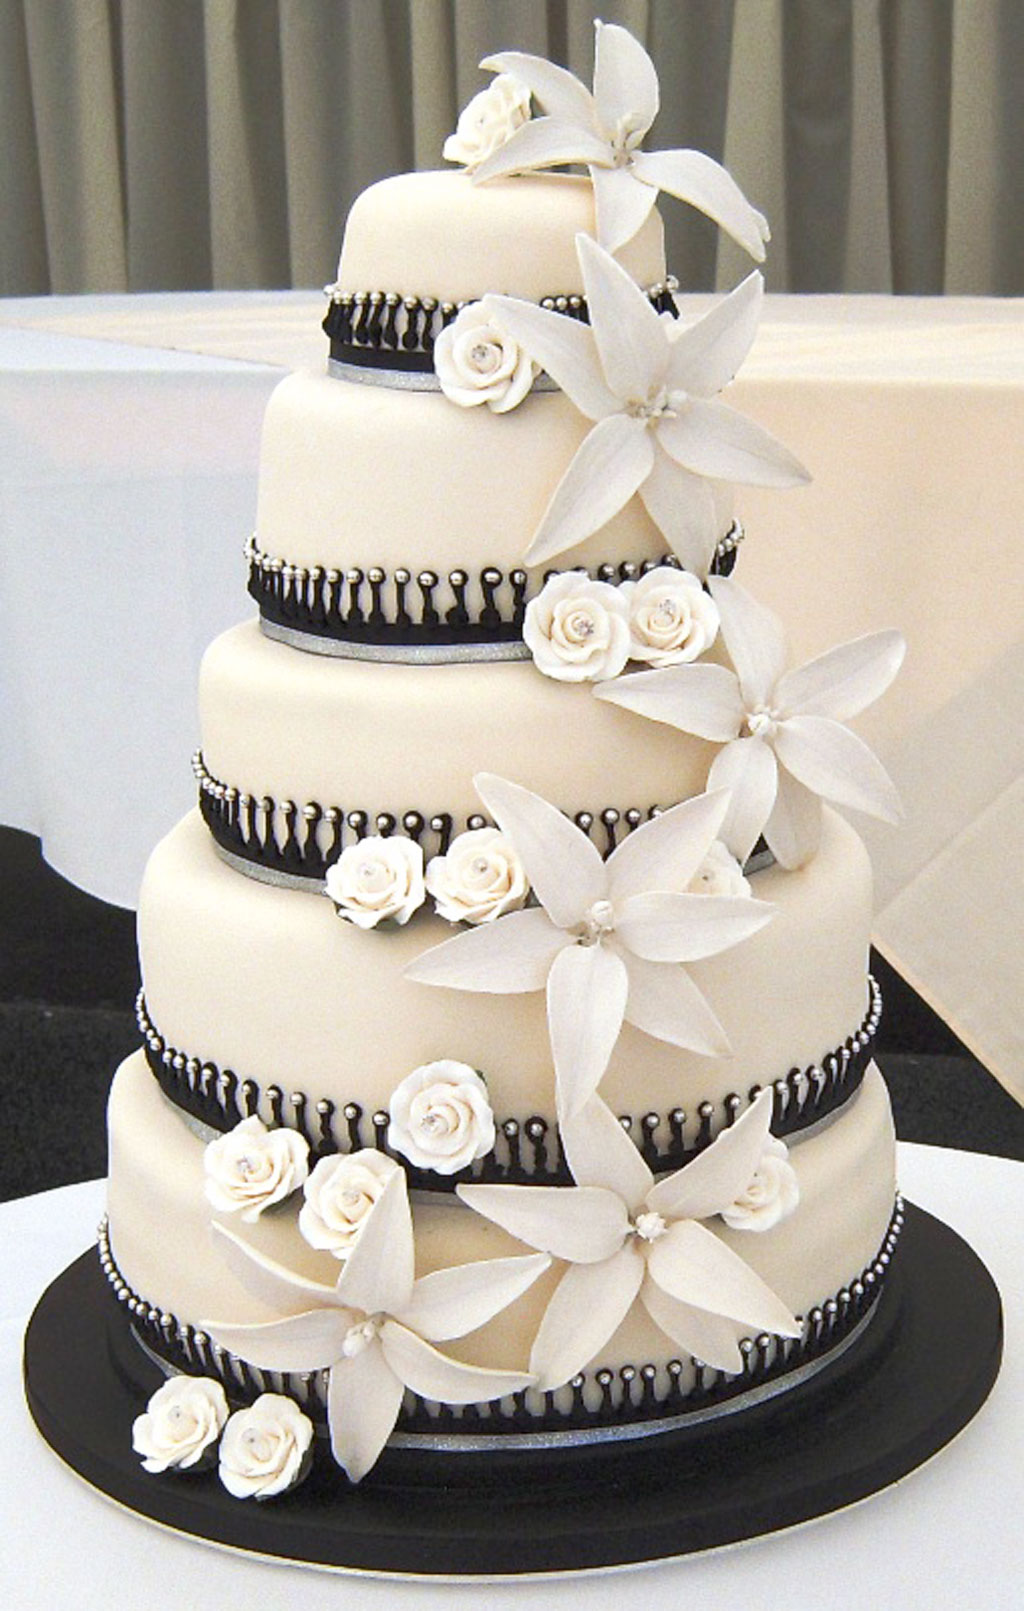 wedding cakes price range black white wedding cake designs wedding cake cake ideas 8912